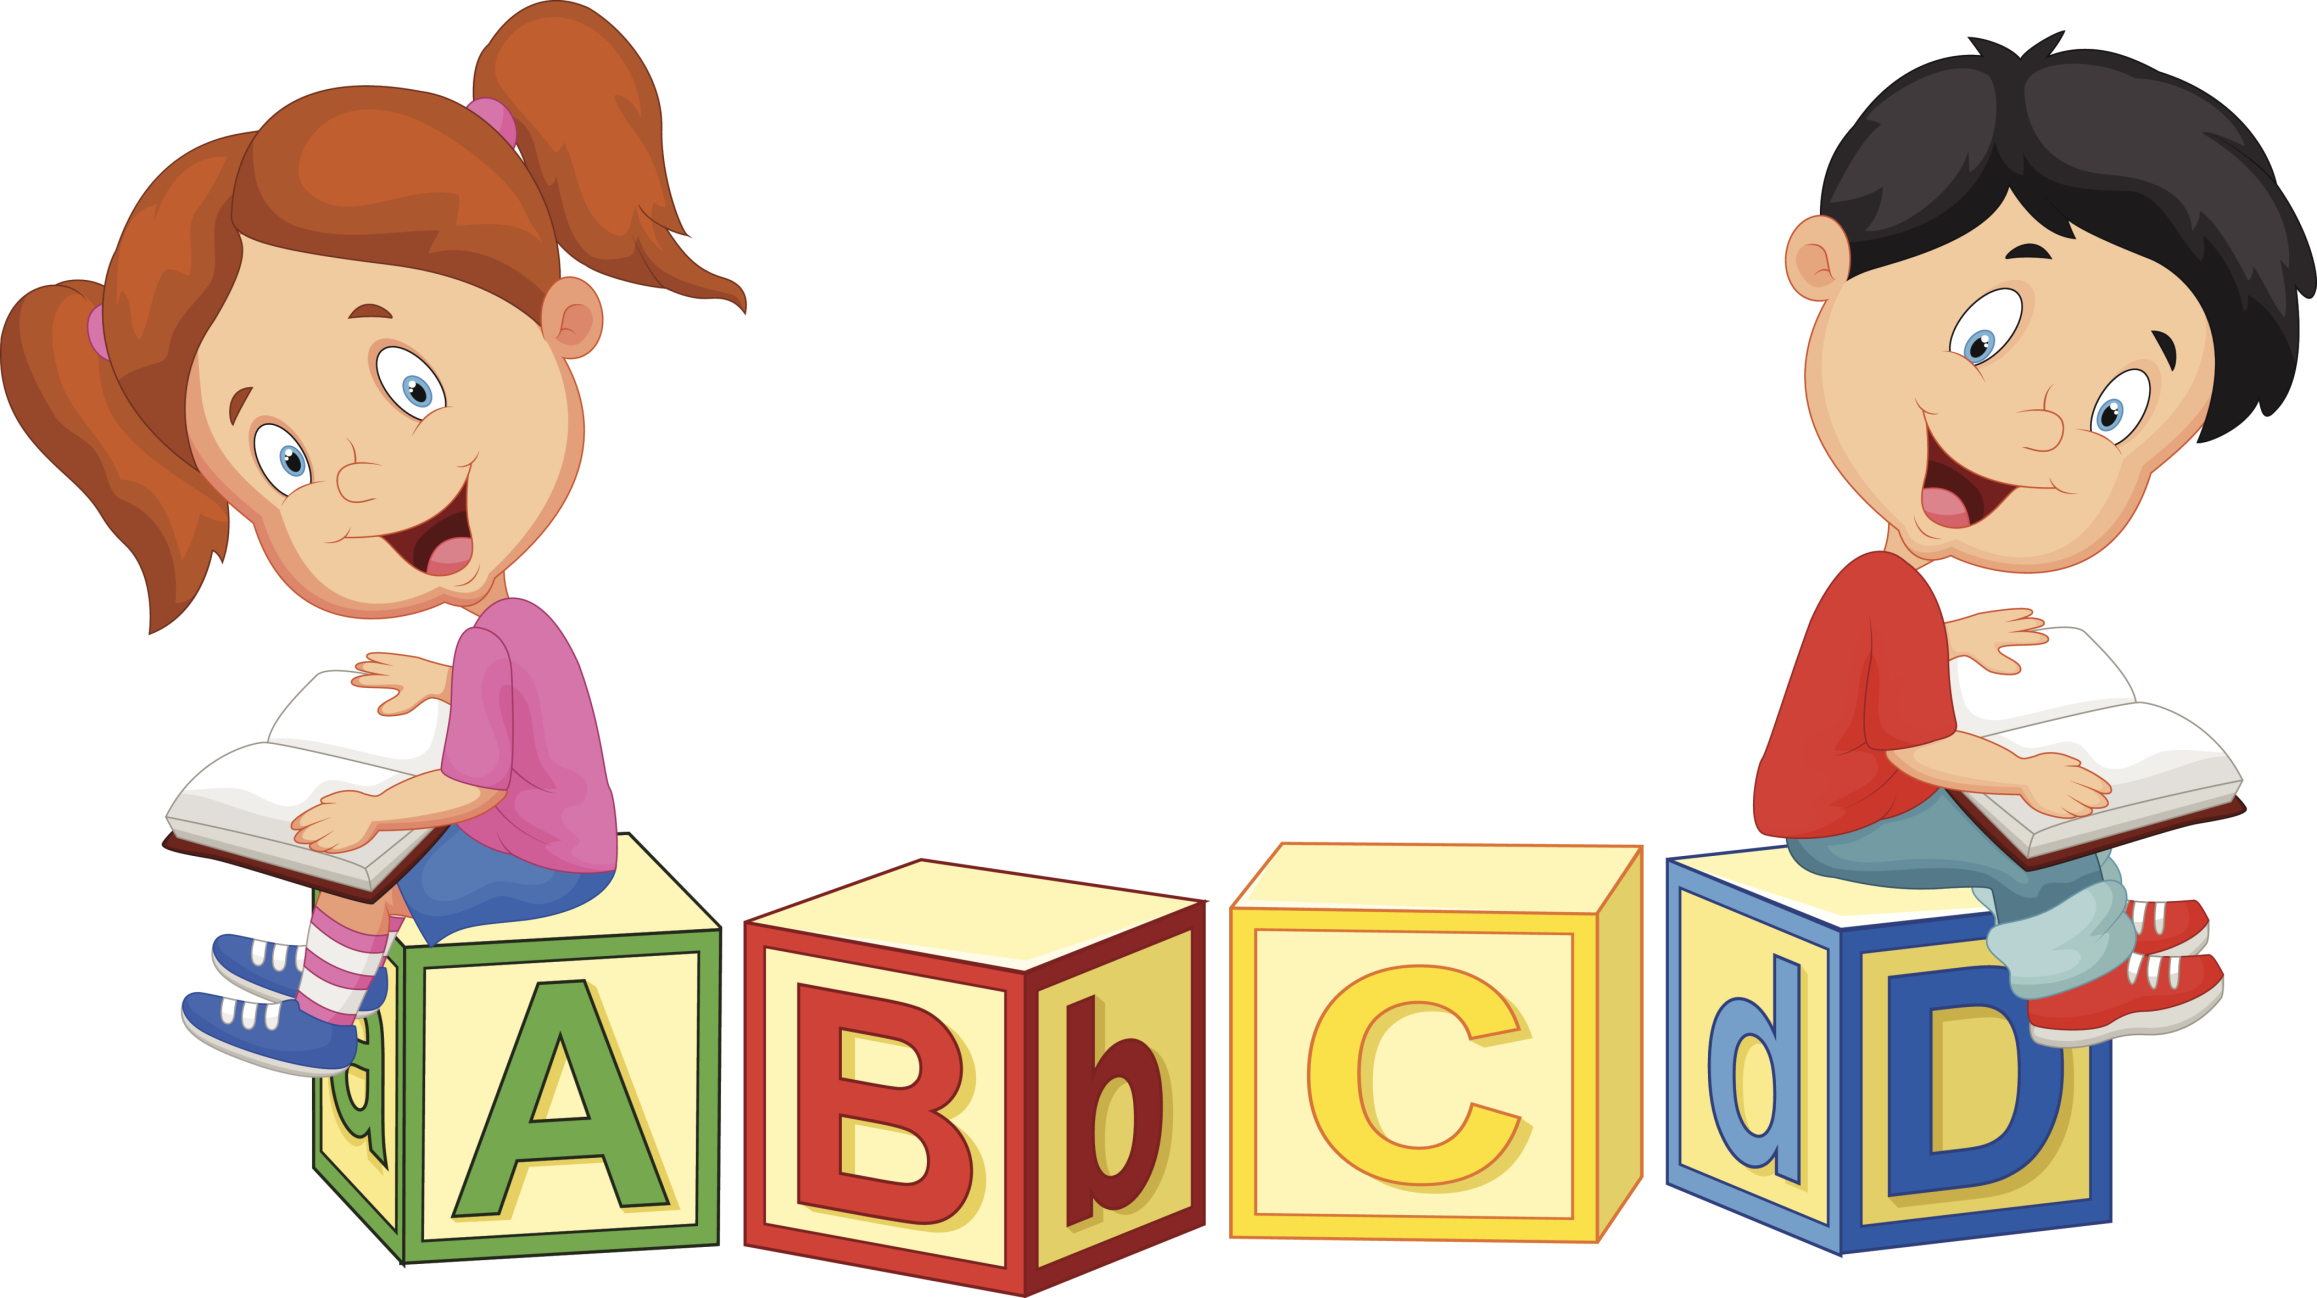 Spelling clipart early literacy. Word games to boost